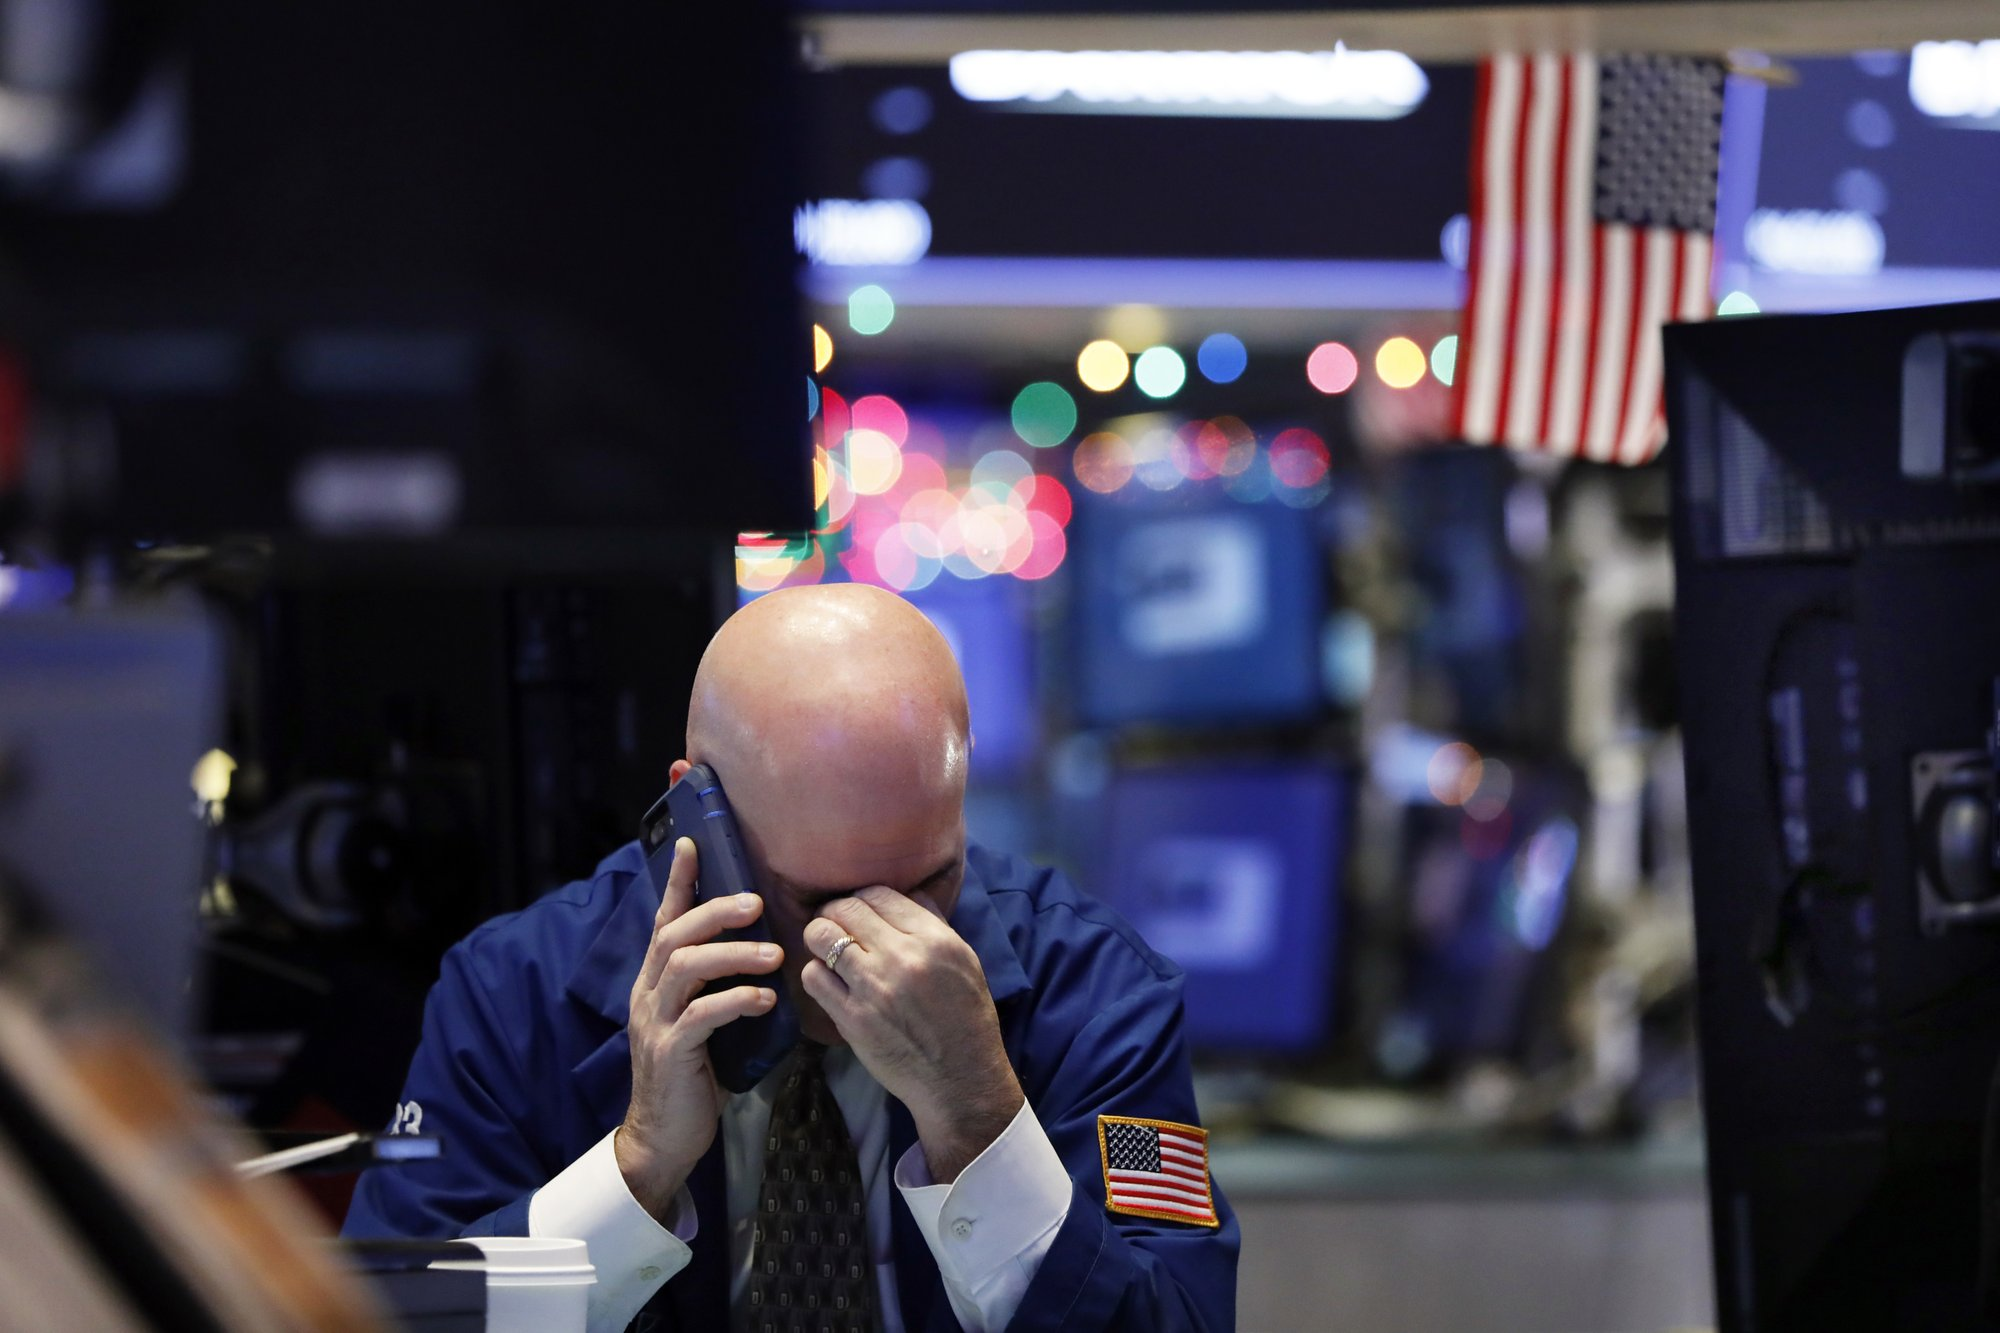 The stock market starts off 2019 with more turbulence